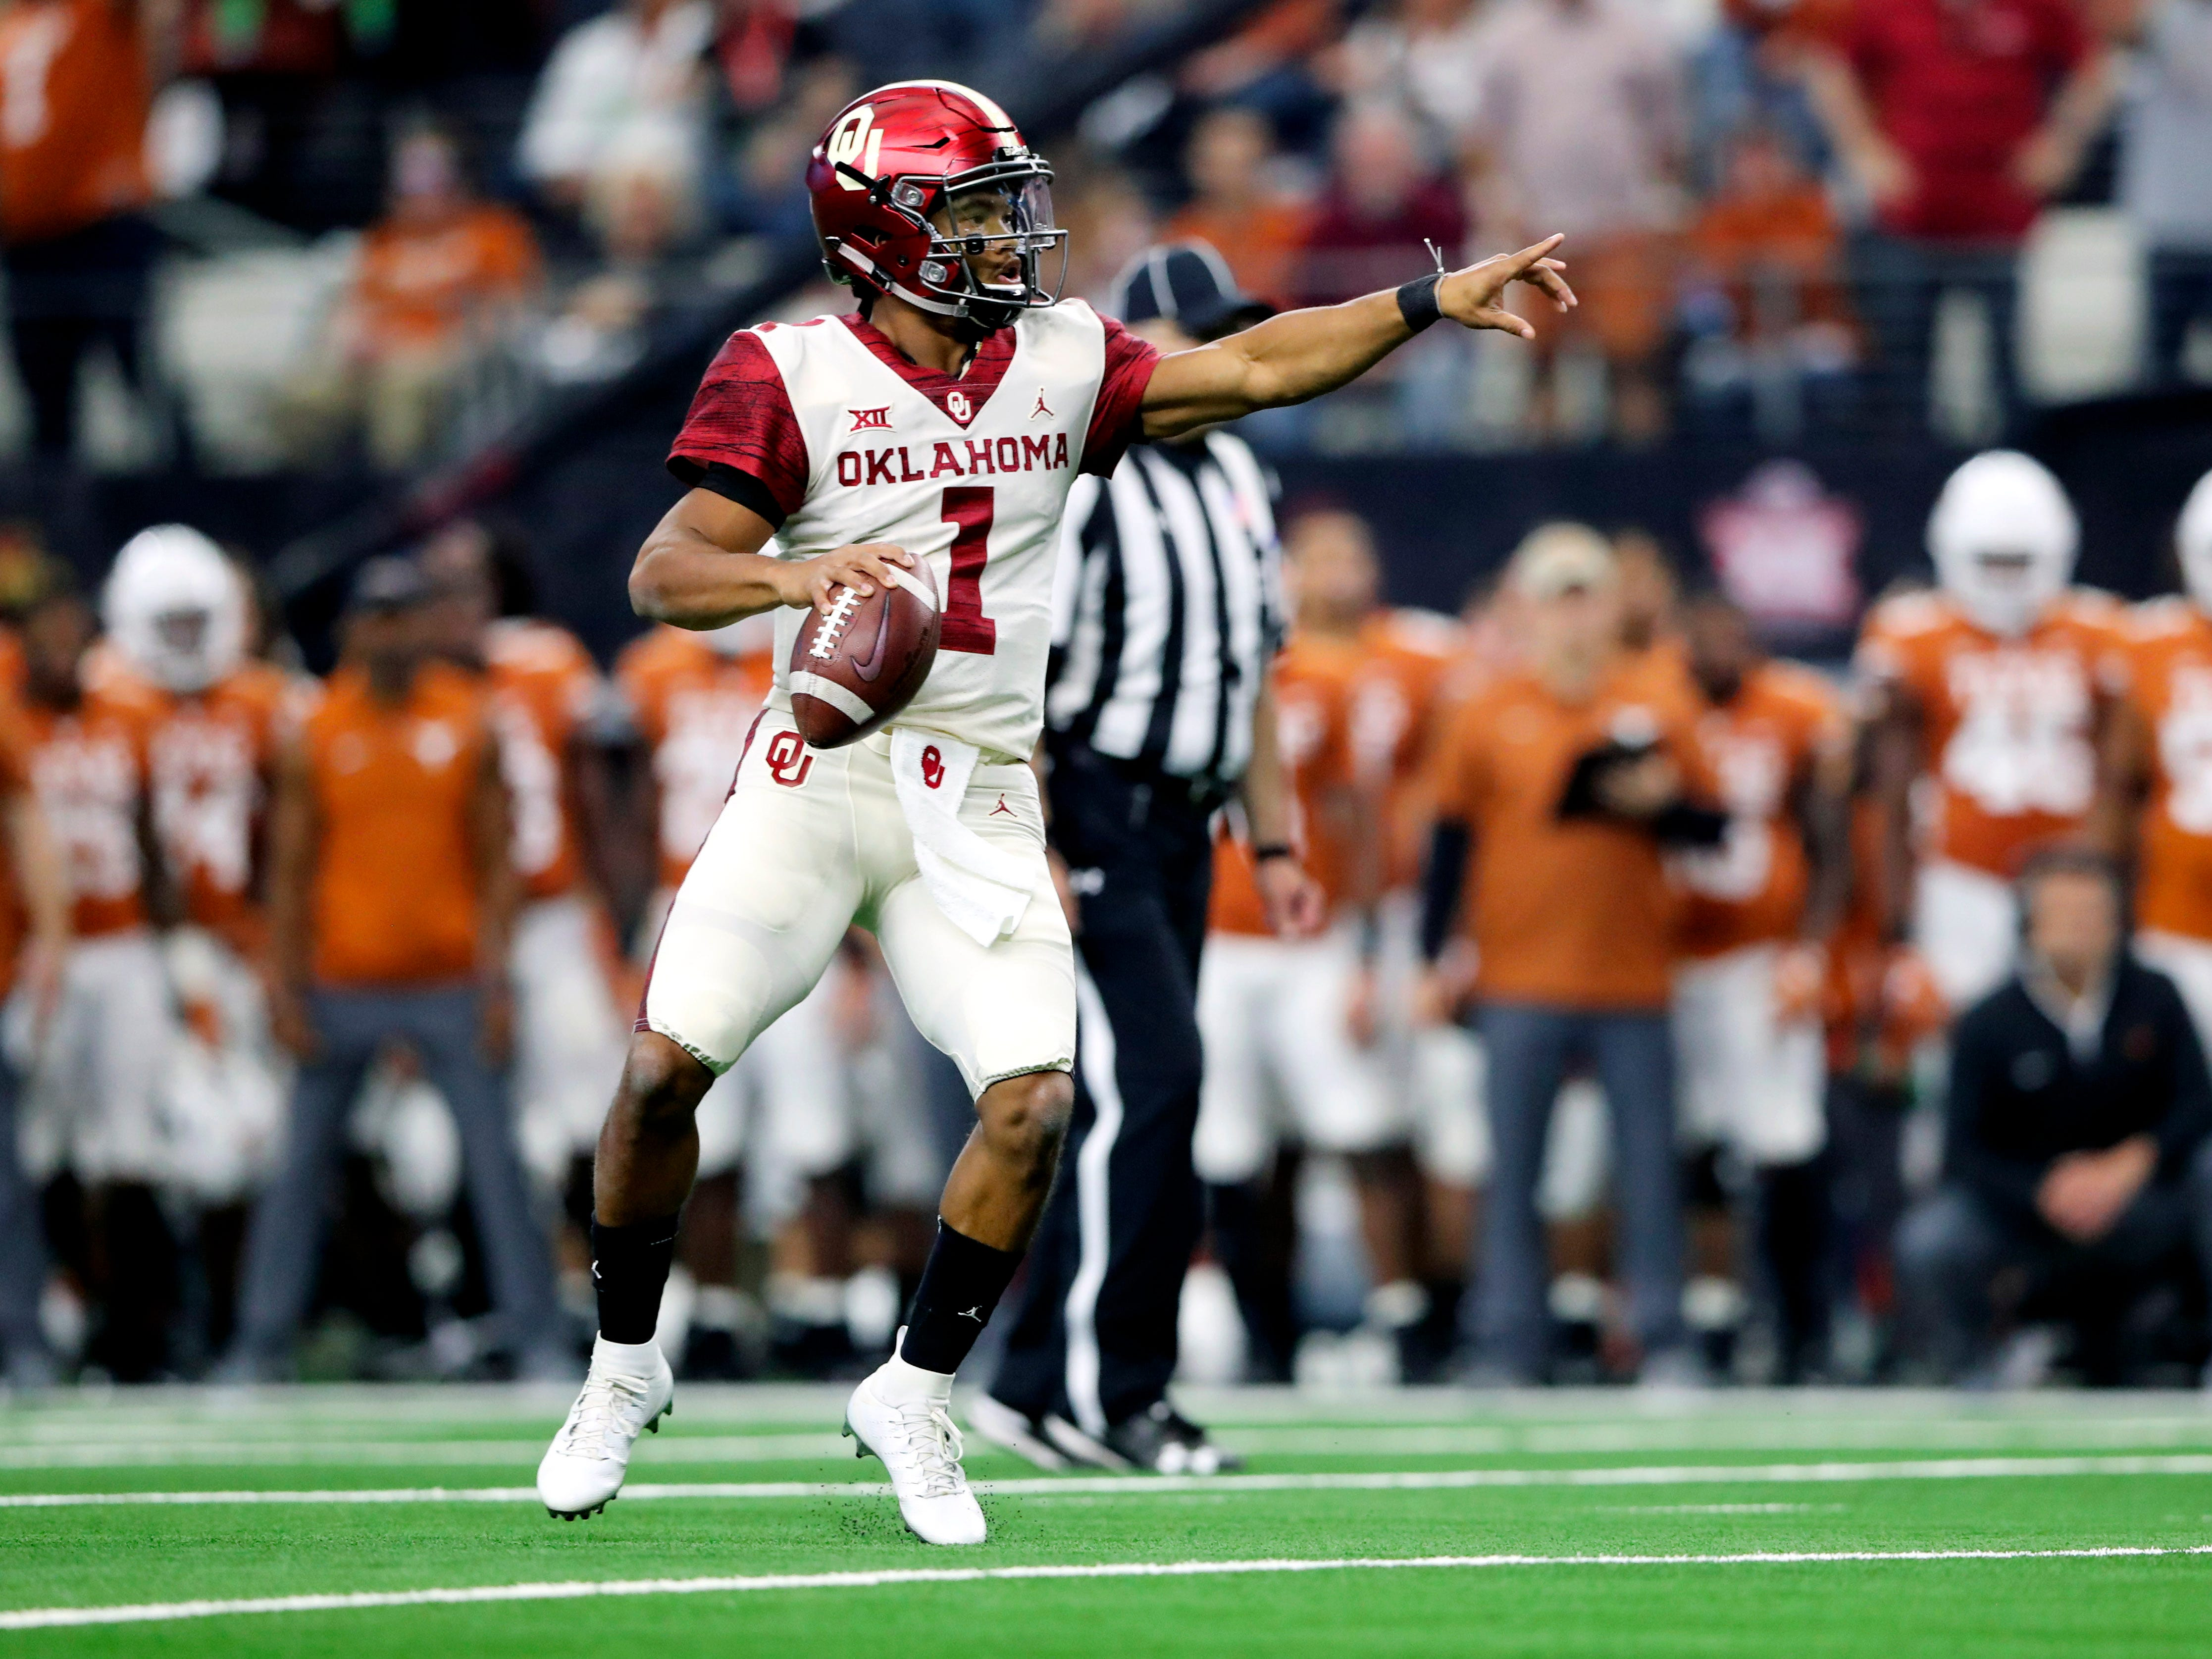 Oklahoma Sooners quarterback Kyler Murray (1) throws during the first quarter against the Texas Longhorns in the Big 12 Championship game at AT&T Stadium.